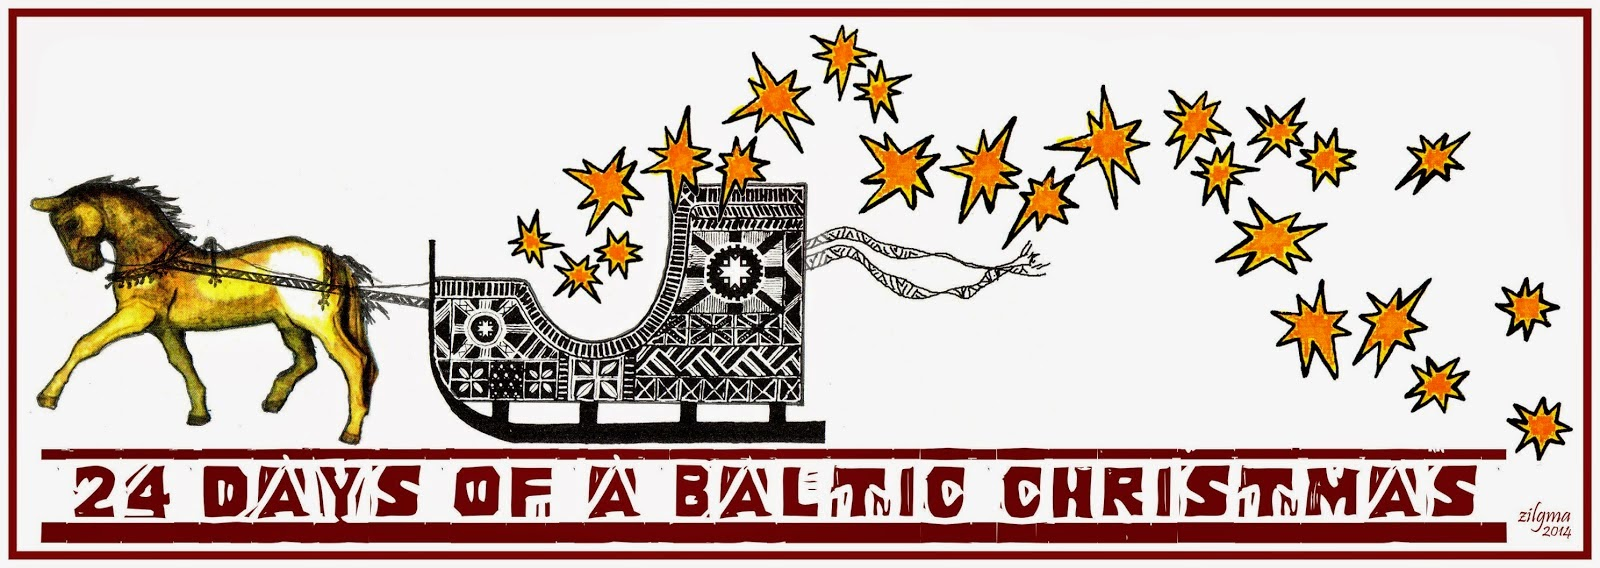 A Baltic Christmas